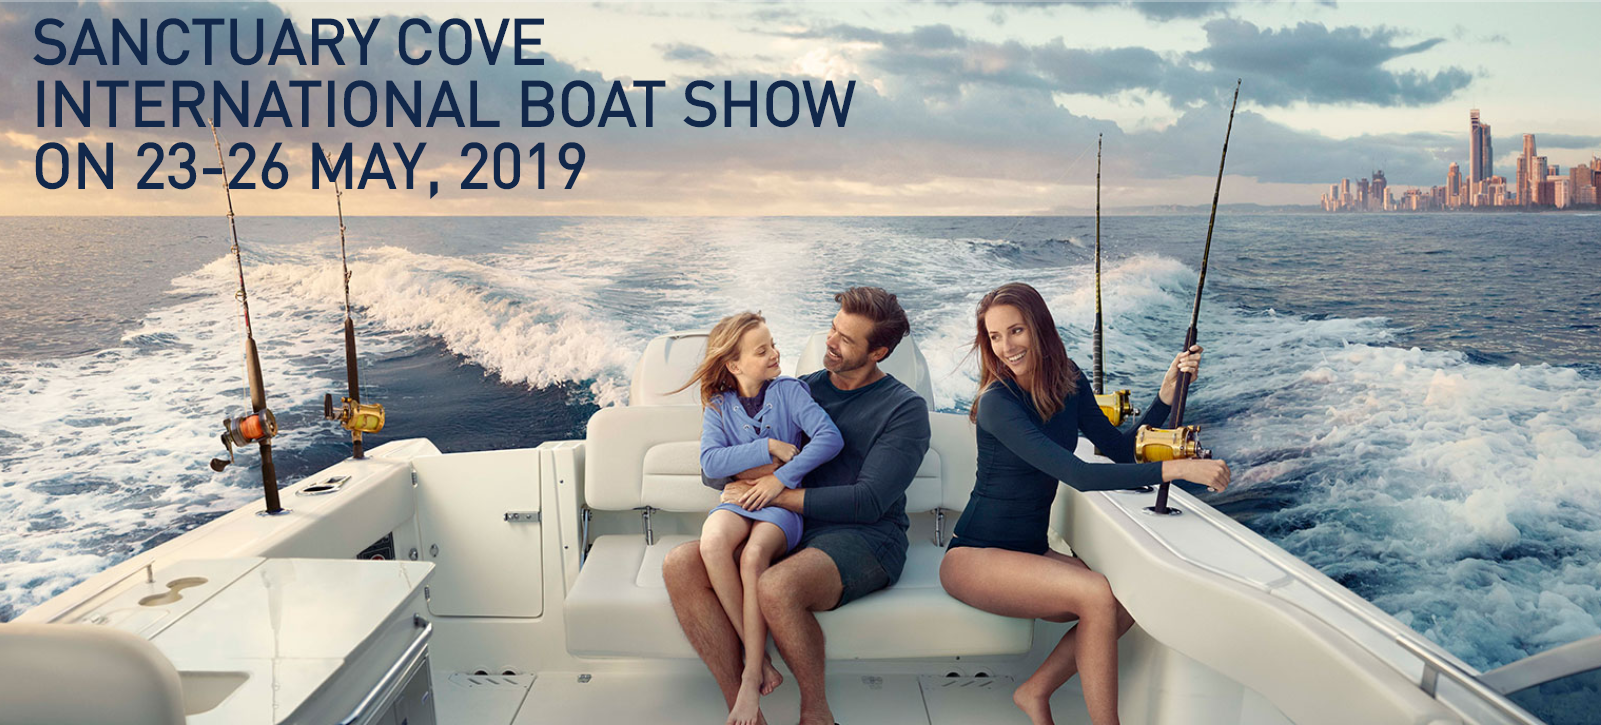 Sanctuary Cove Boat Show 2019